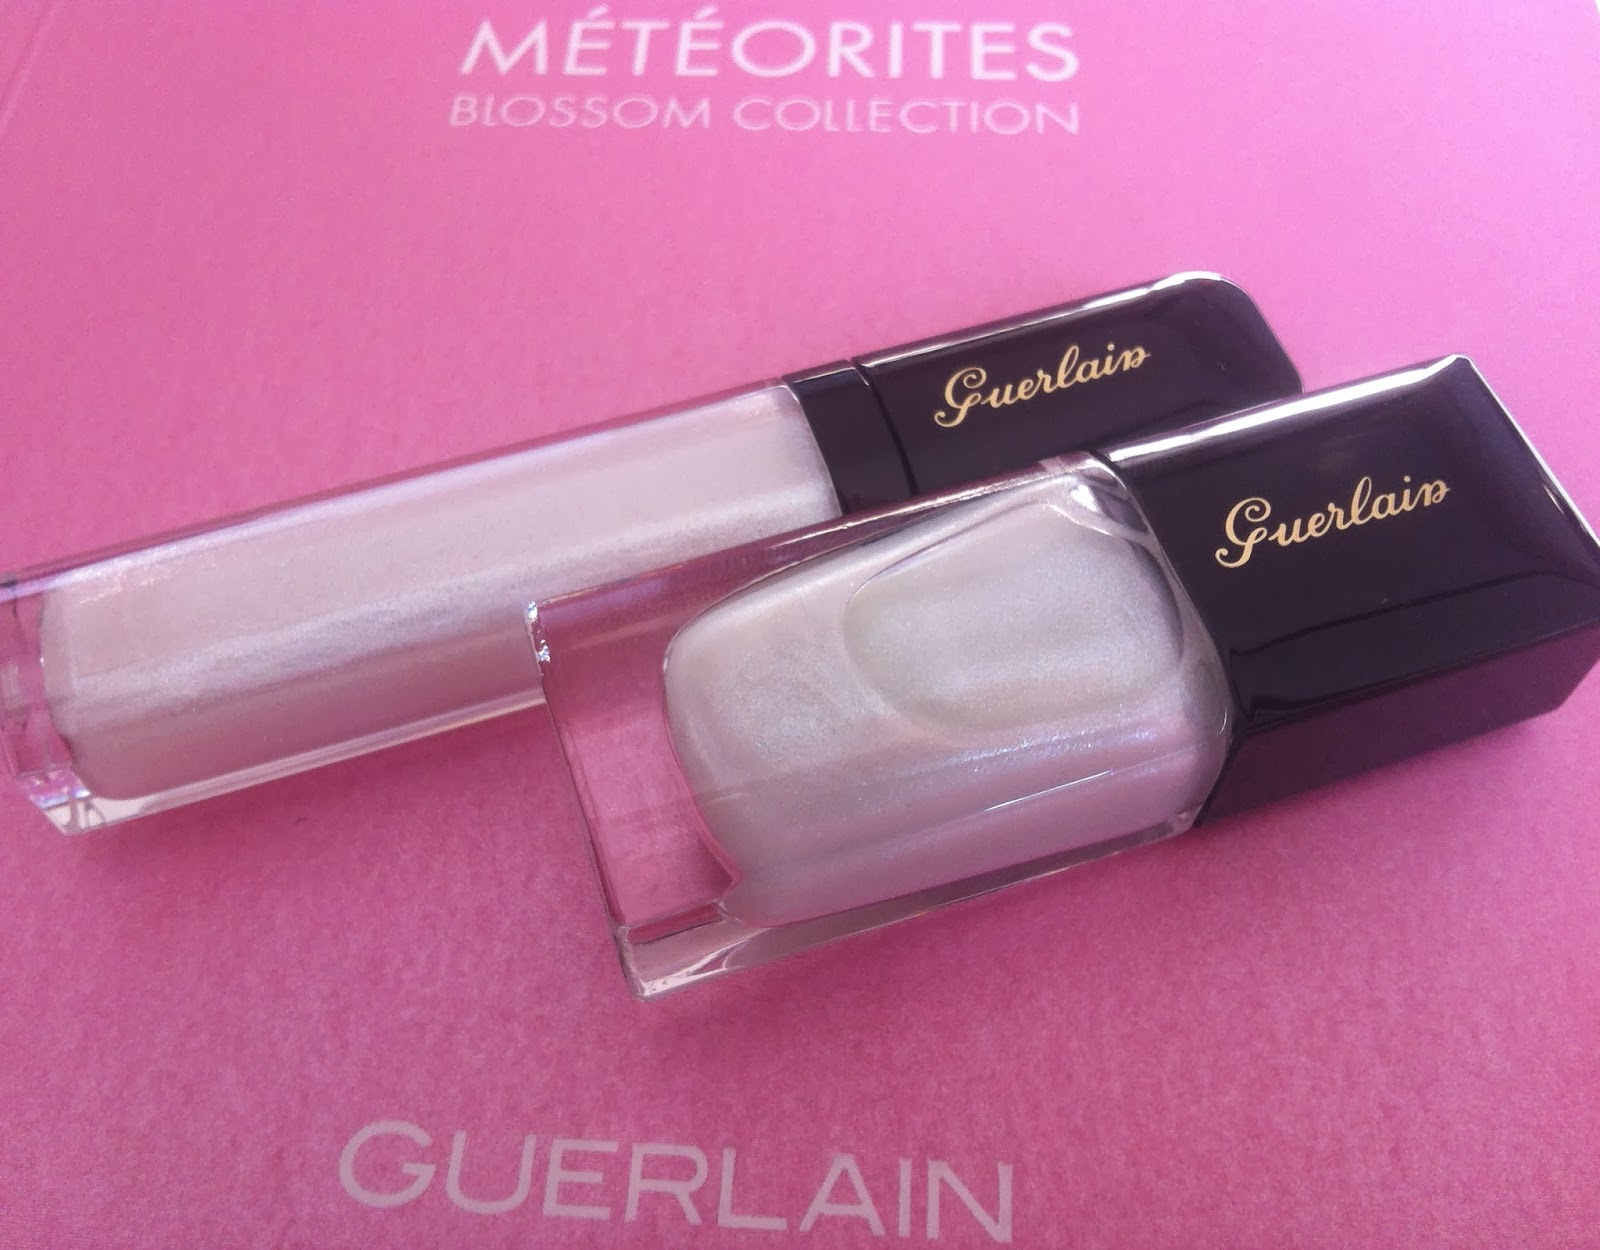 Guerlain make up spring 2014 Météorites Blossom Collection, gloss d'enfer star dust, la laque couleur star dust